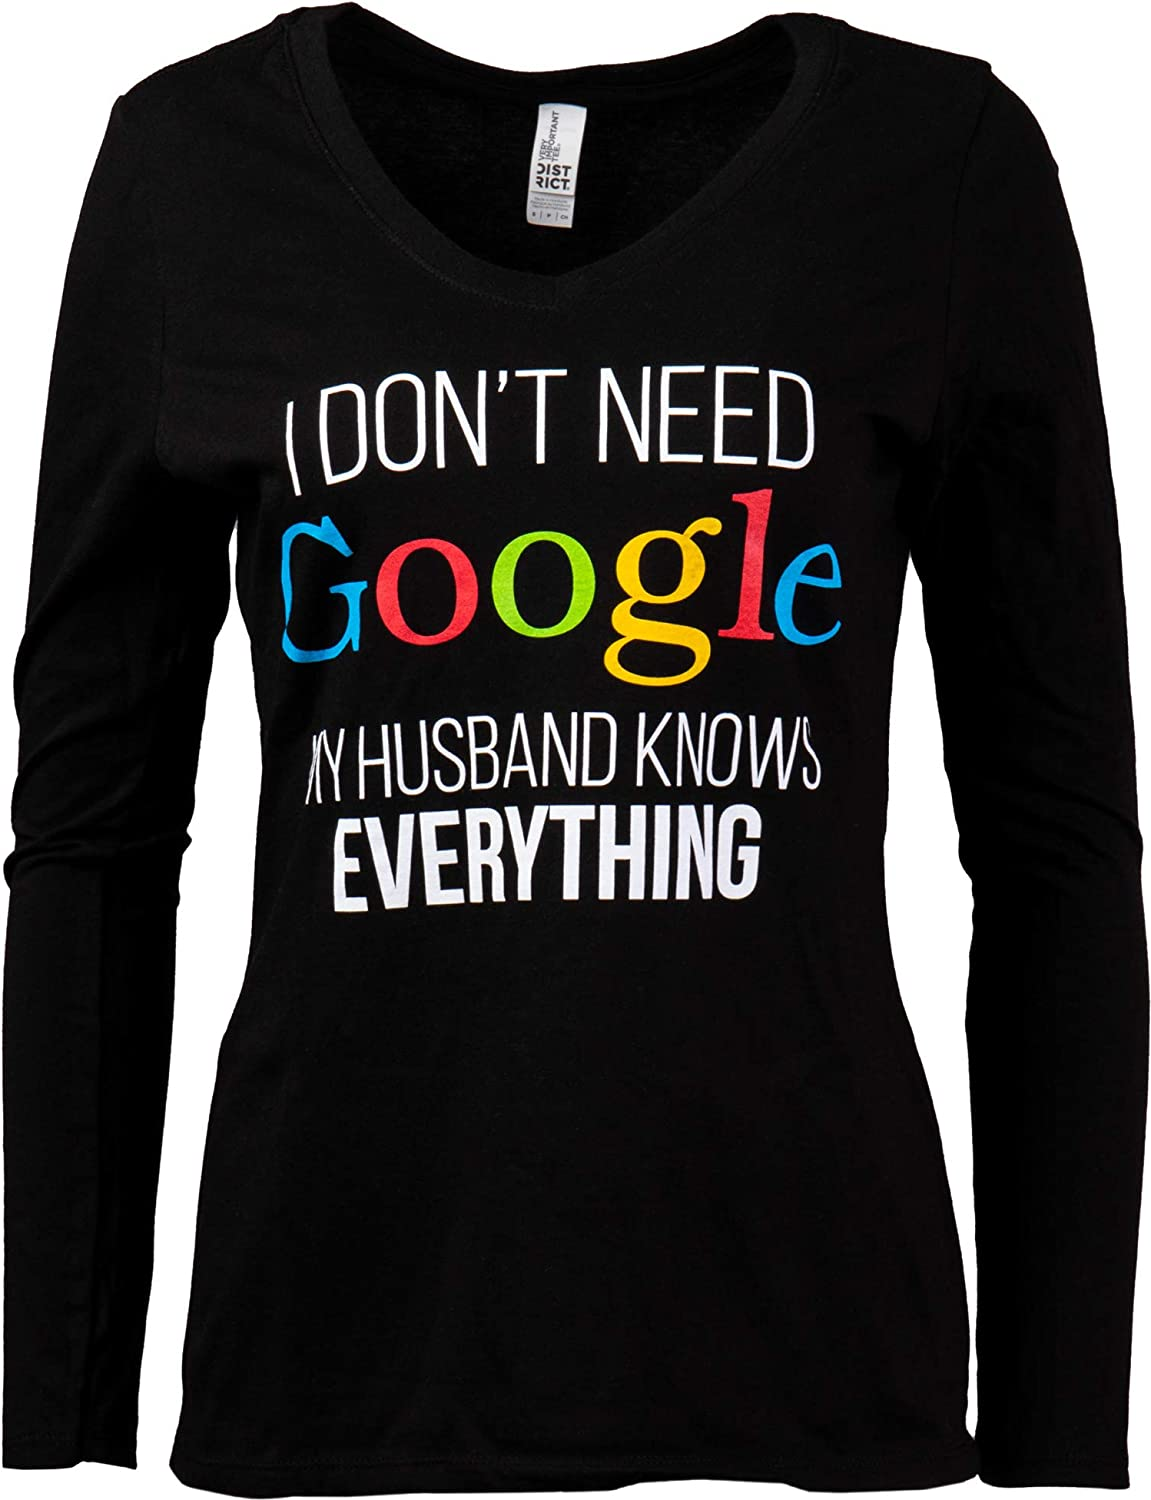 Wife Womens V-Neck Graphic T-Shirt I Dont Need Google My Husband Knows Everything